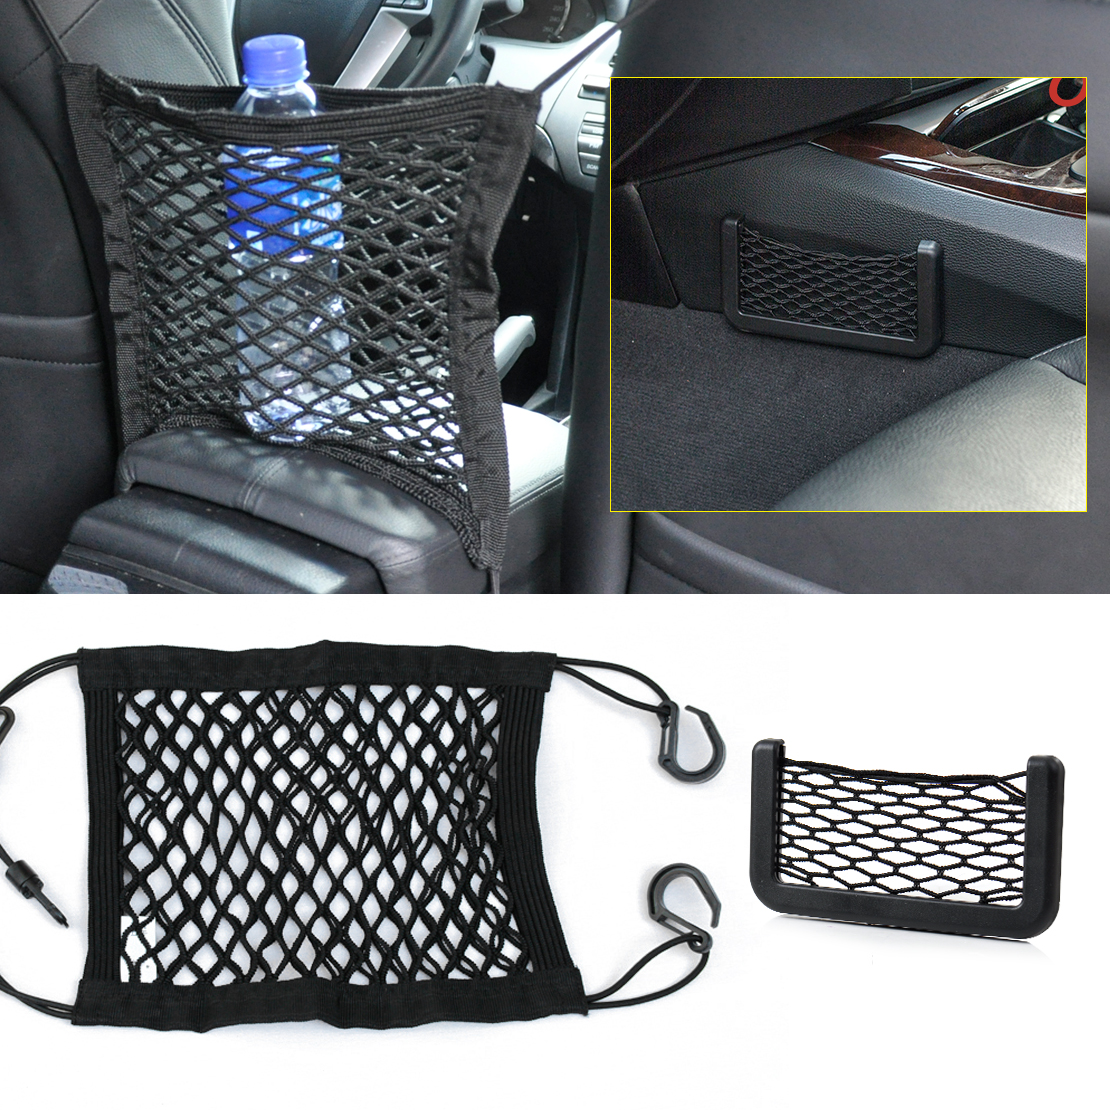 universal nylon car seat storage mesh luggage bag phone card net bag holder 702706007603 ebay. Black Bedroom Furniture Sets. Home Design Ideas